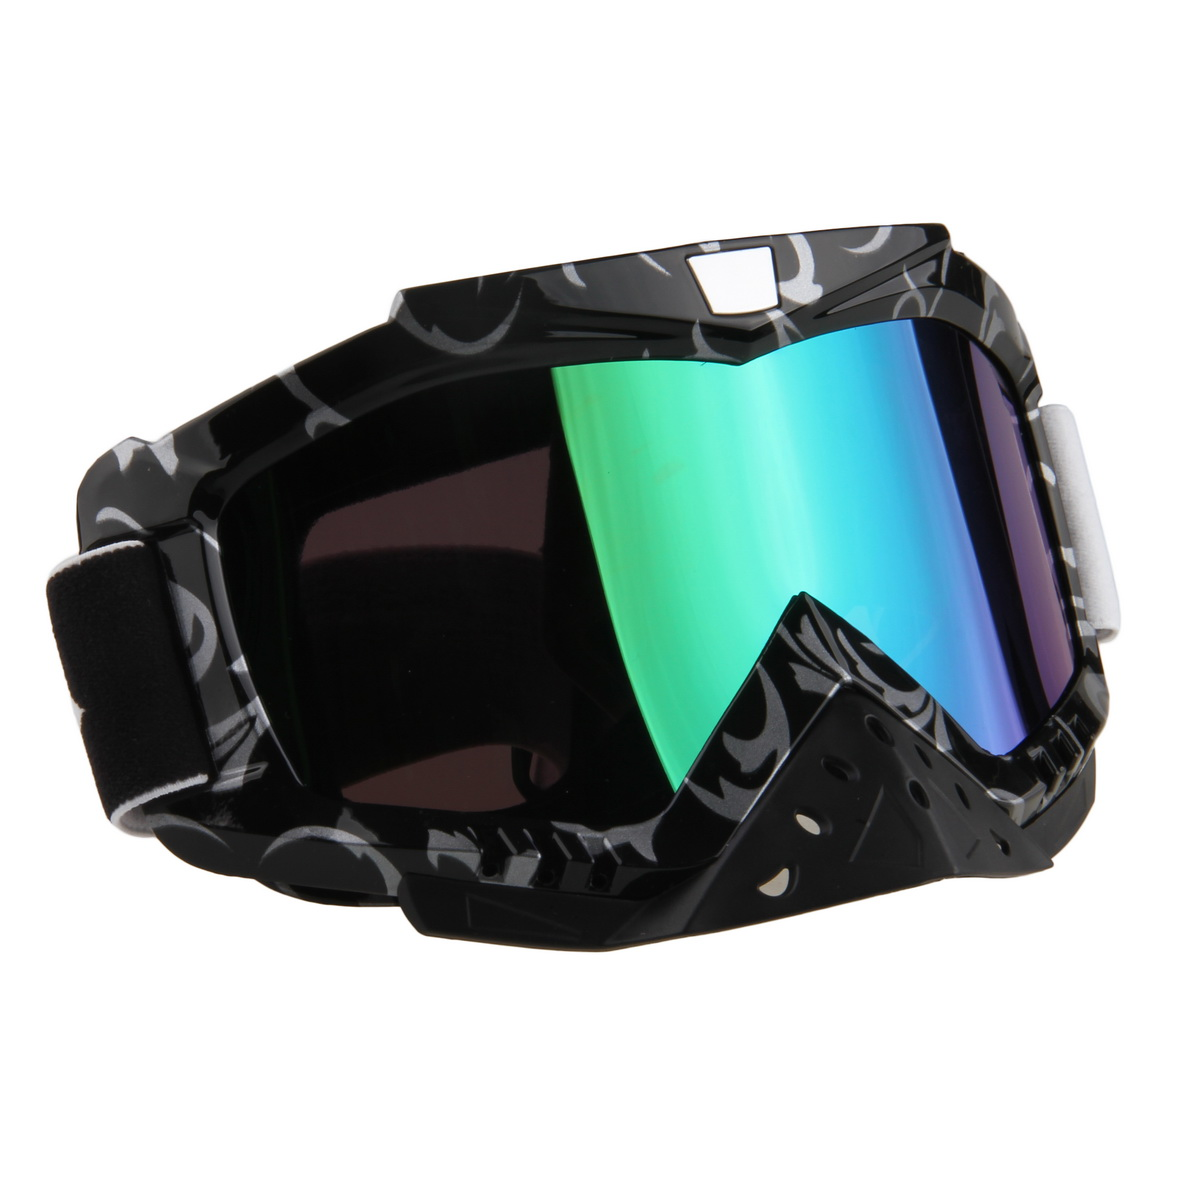 Adult Windproof Motocross Off-Road Cycling Motorcycle Motocross Goggles Black Frame Reflective Lens Glasses Ski Eyewear